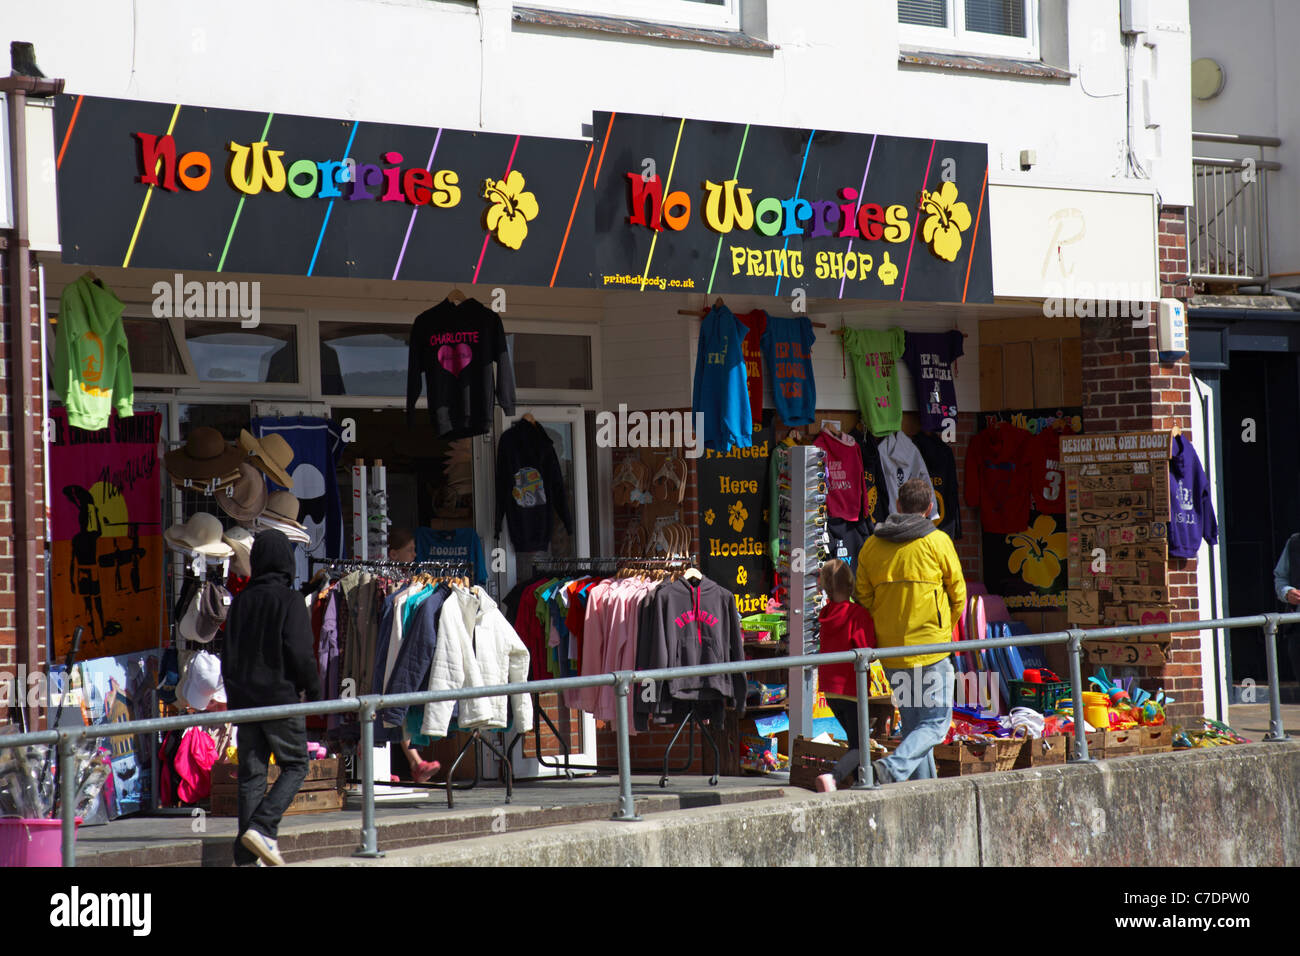 No Worries print shop in Padstow in May - Stock Image